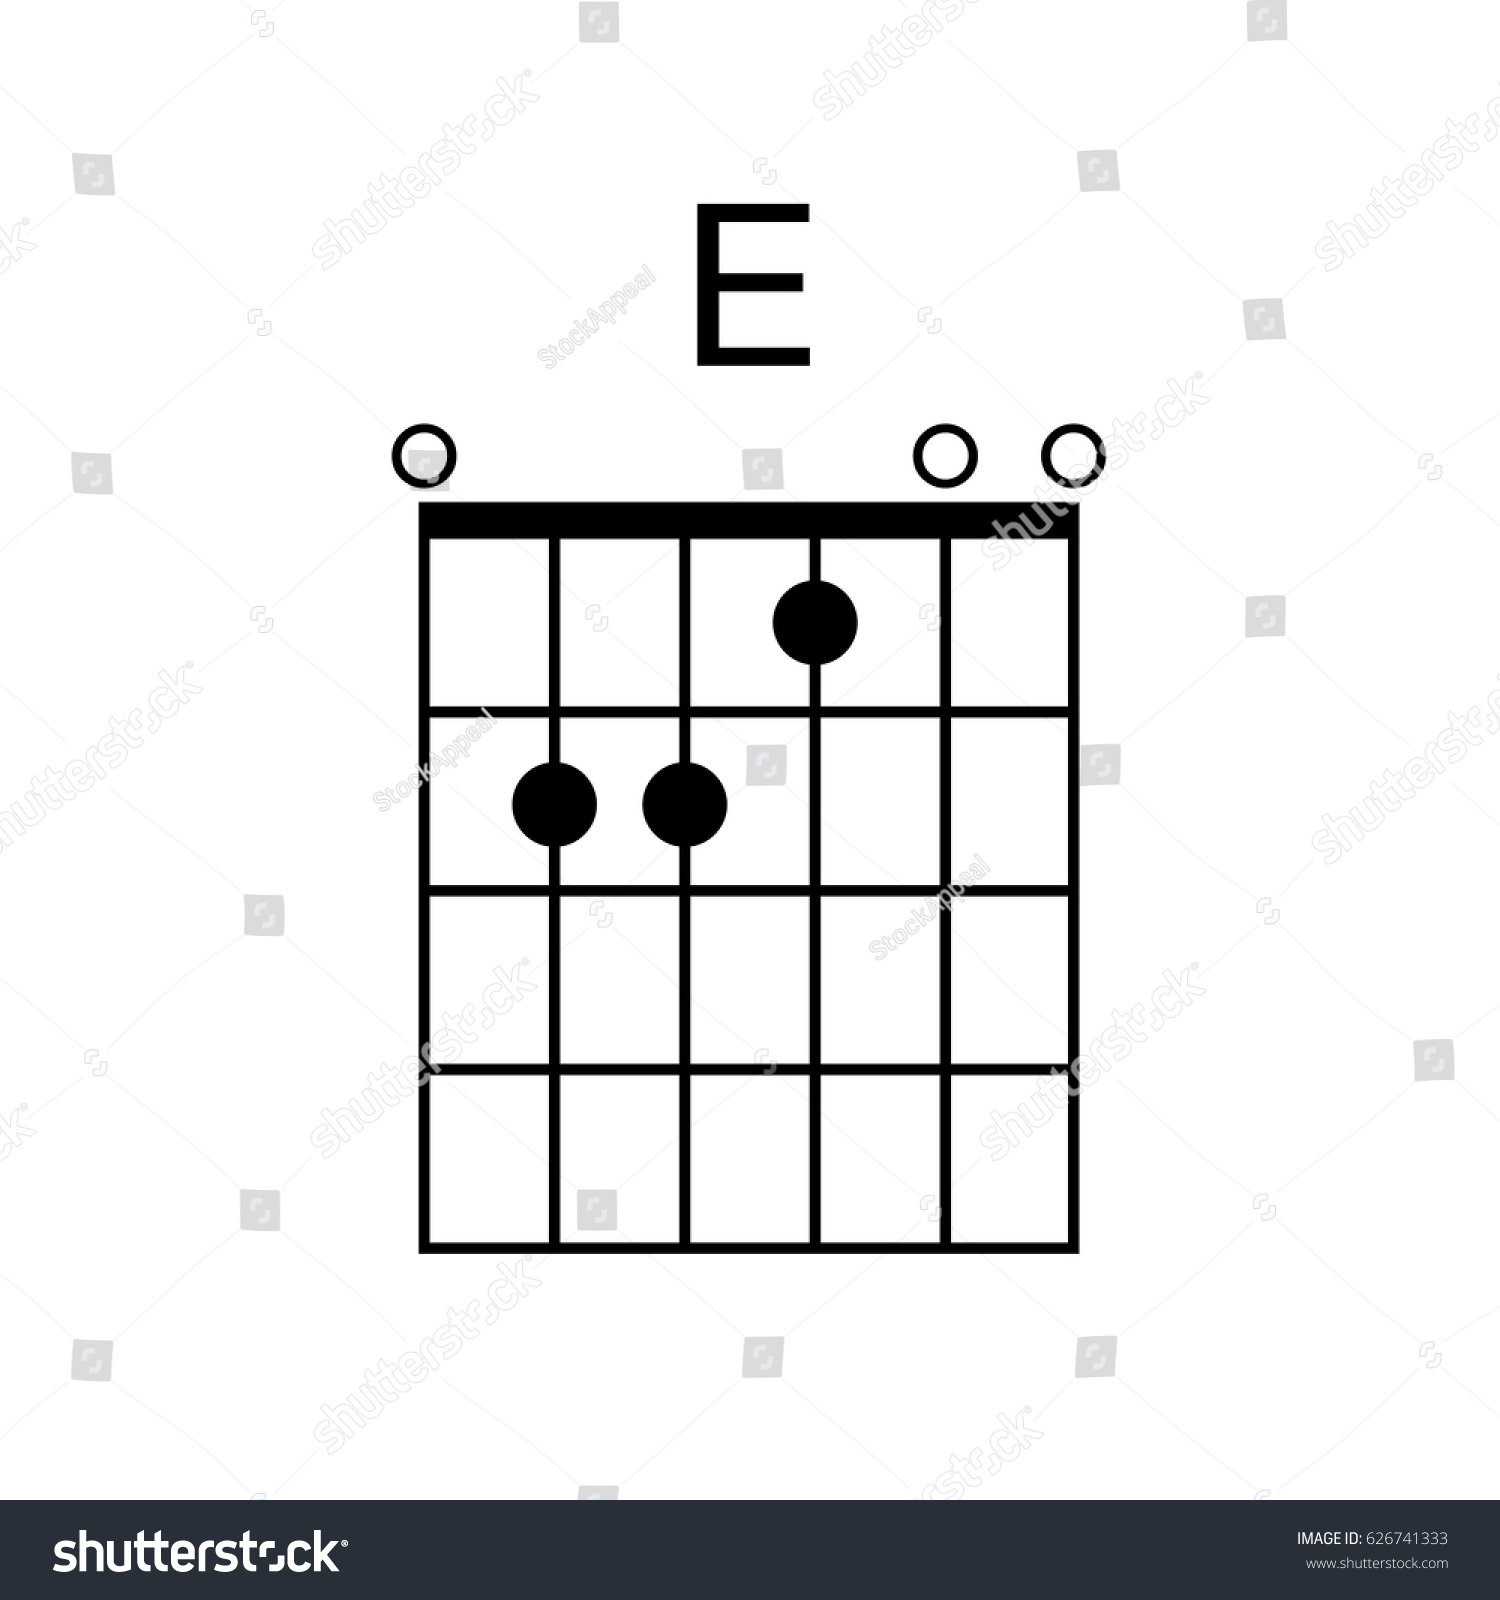 how to read chords guitar chart